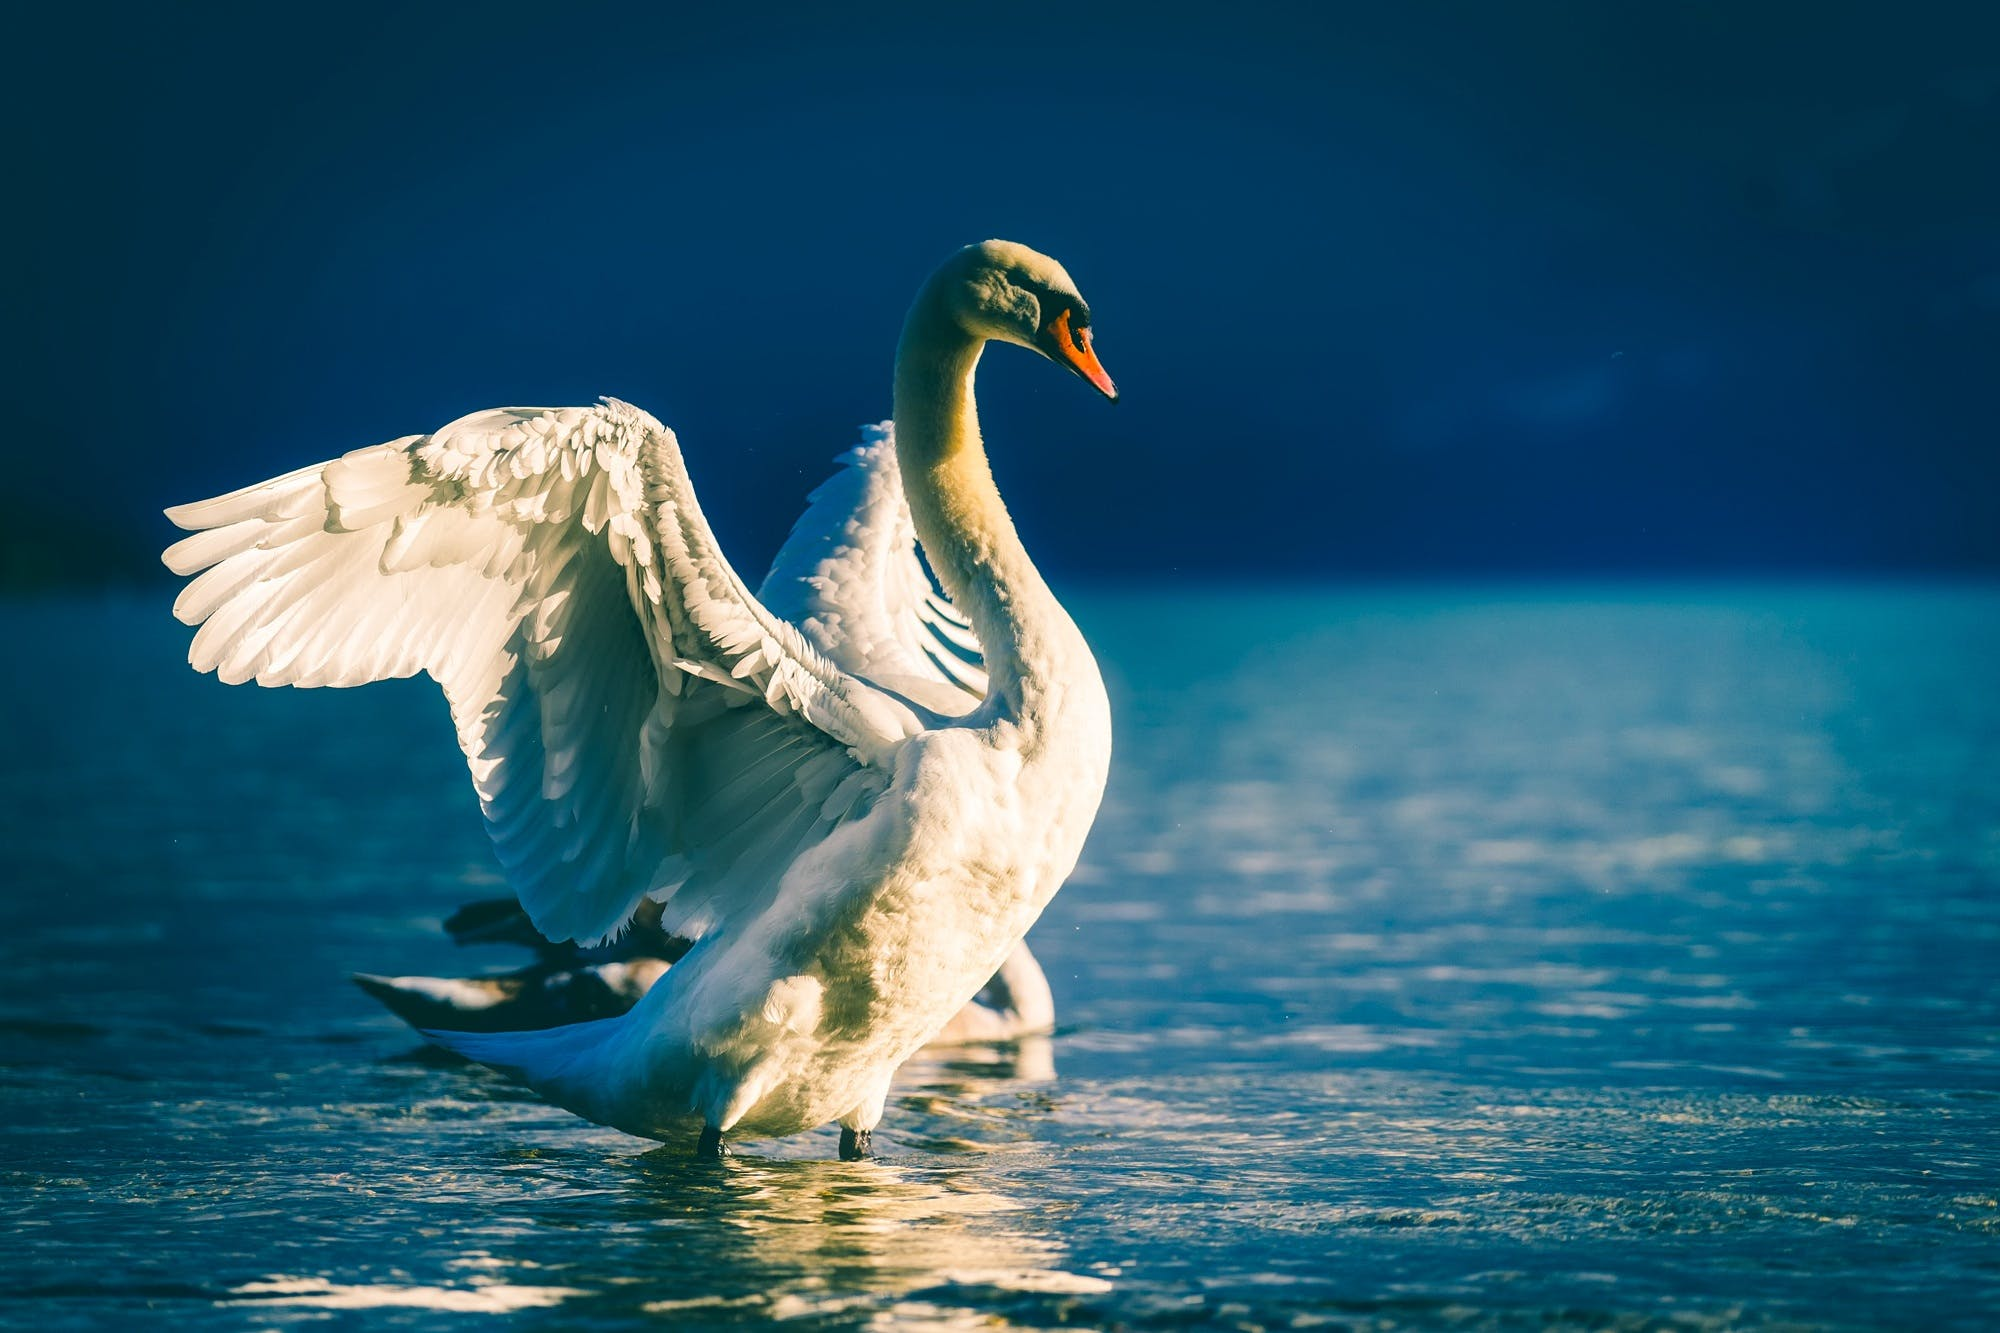 White Swan Spread Its Wing